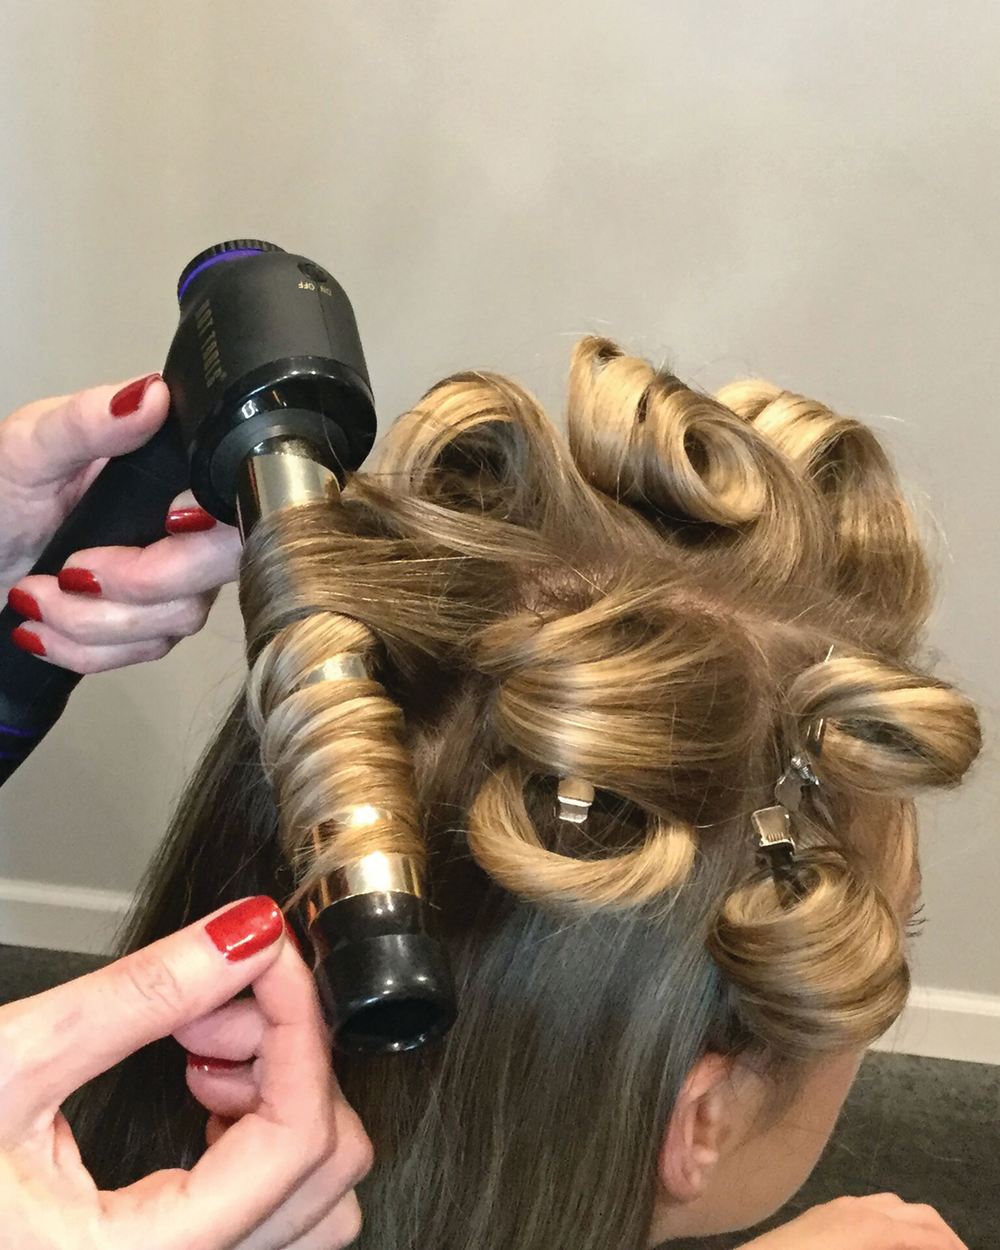 1. Wrap hair around the Curl Bar beginning near the handle. Twist the hair as you wrap to create spiral curls; the thickness of each curl will depend on the density of the hair.